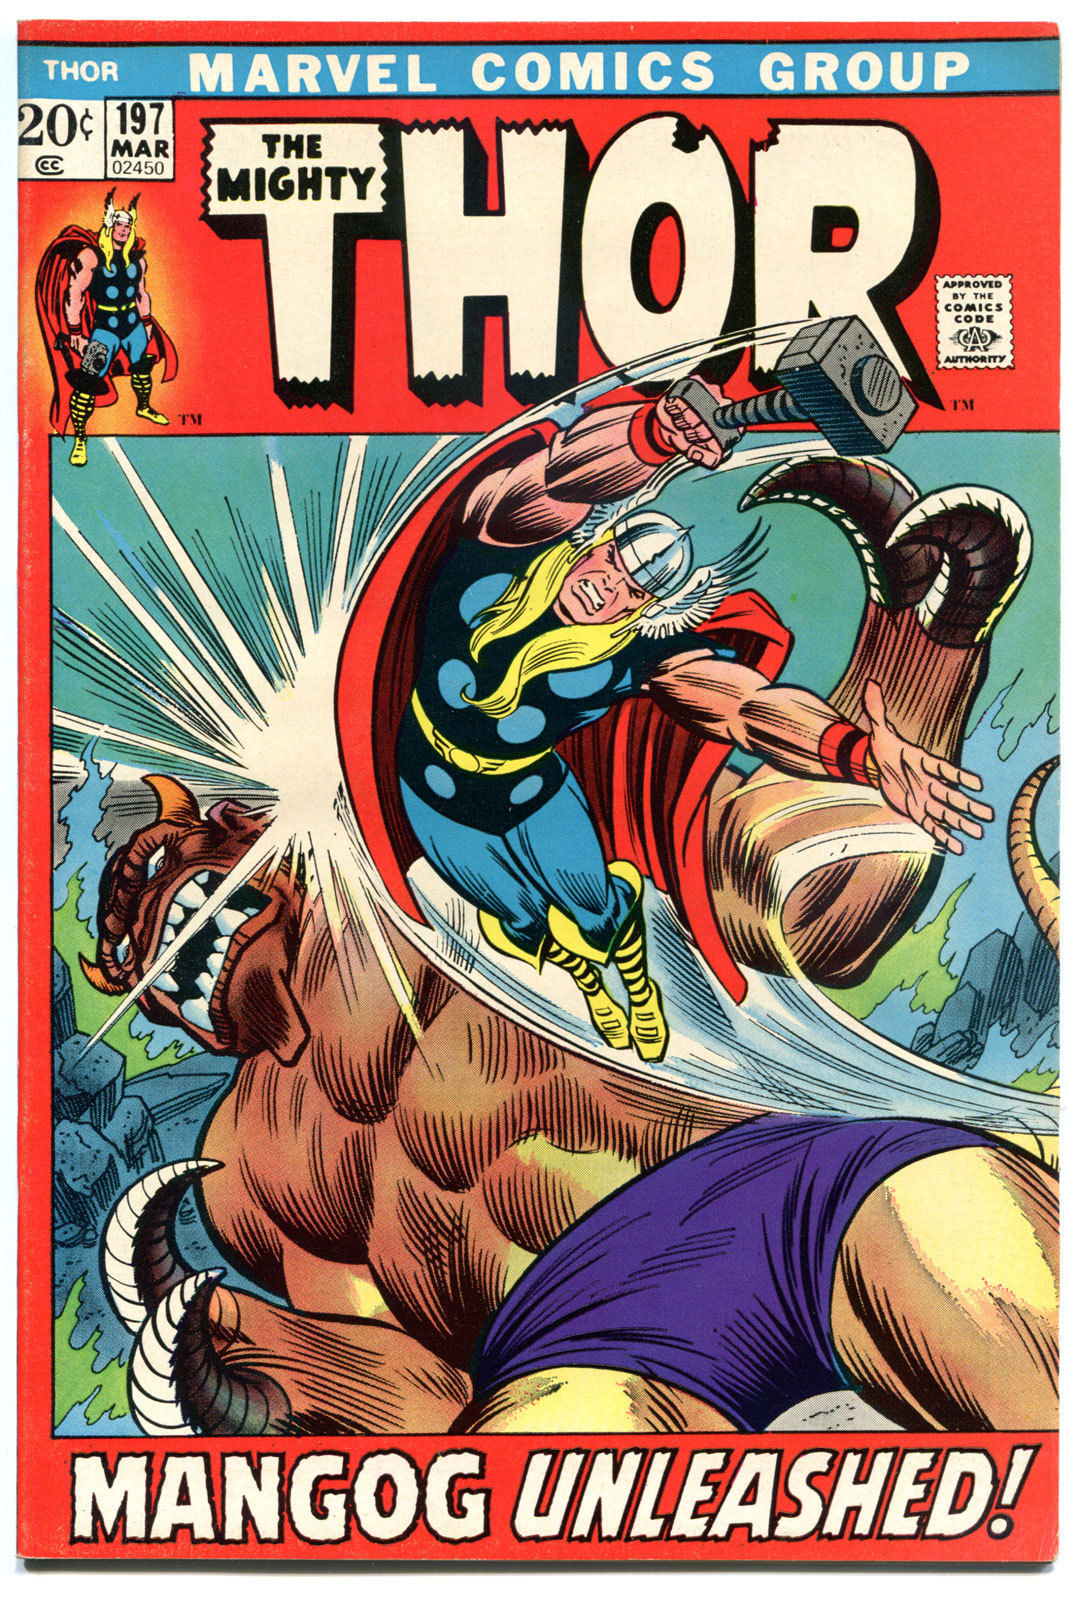 THOR #197, VF/NM to NM-, Thunder God,1952, John Buscema, Mangog, more in store